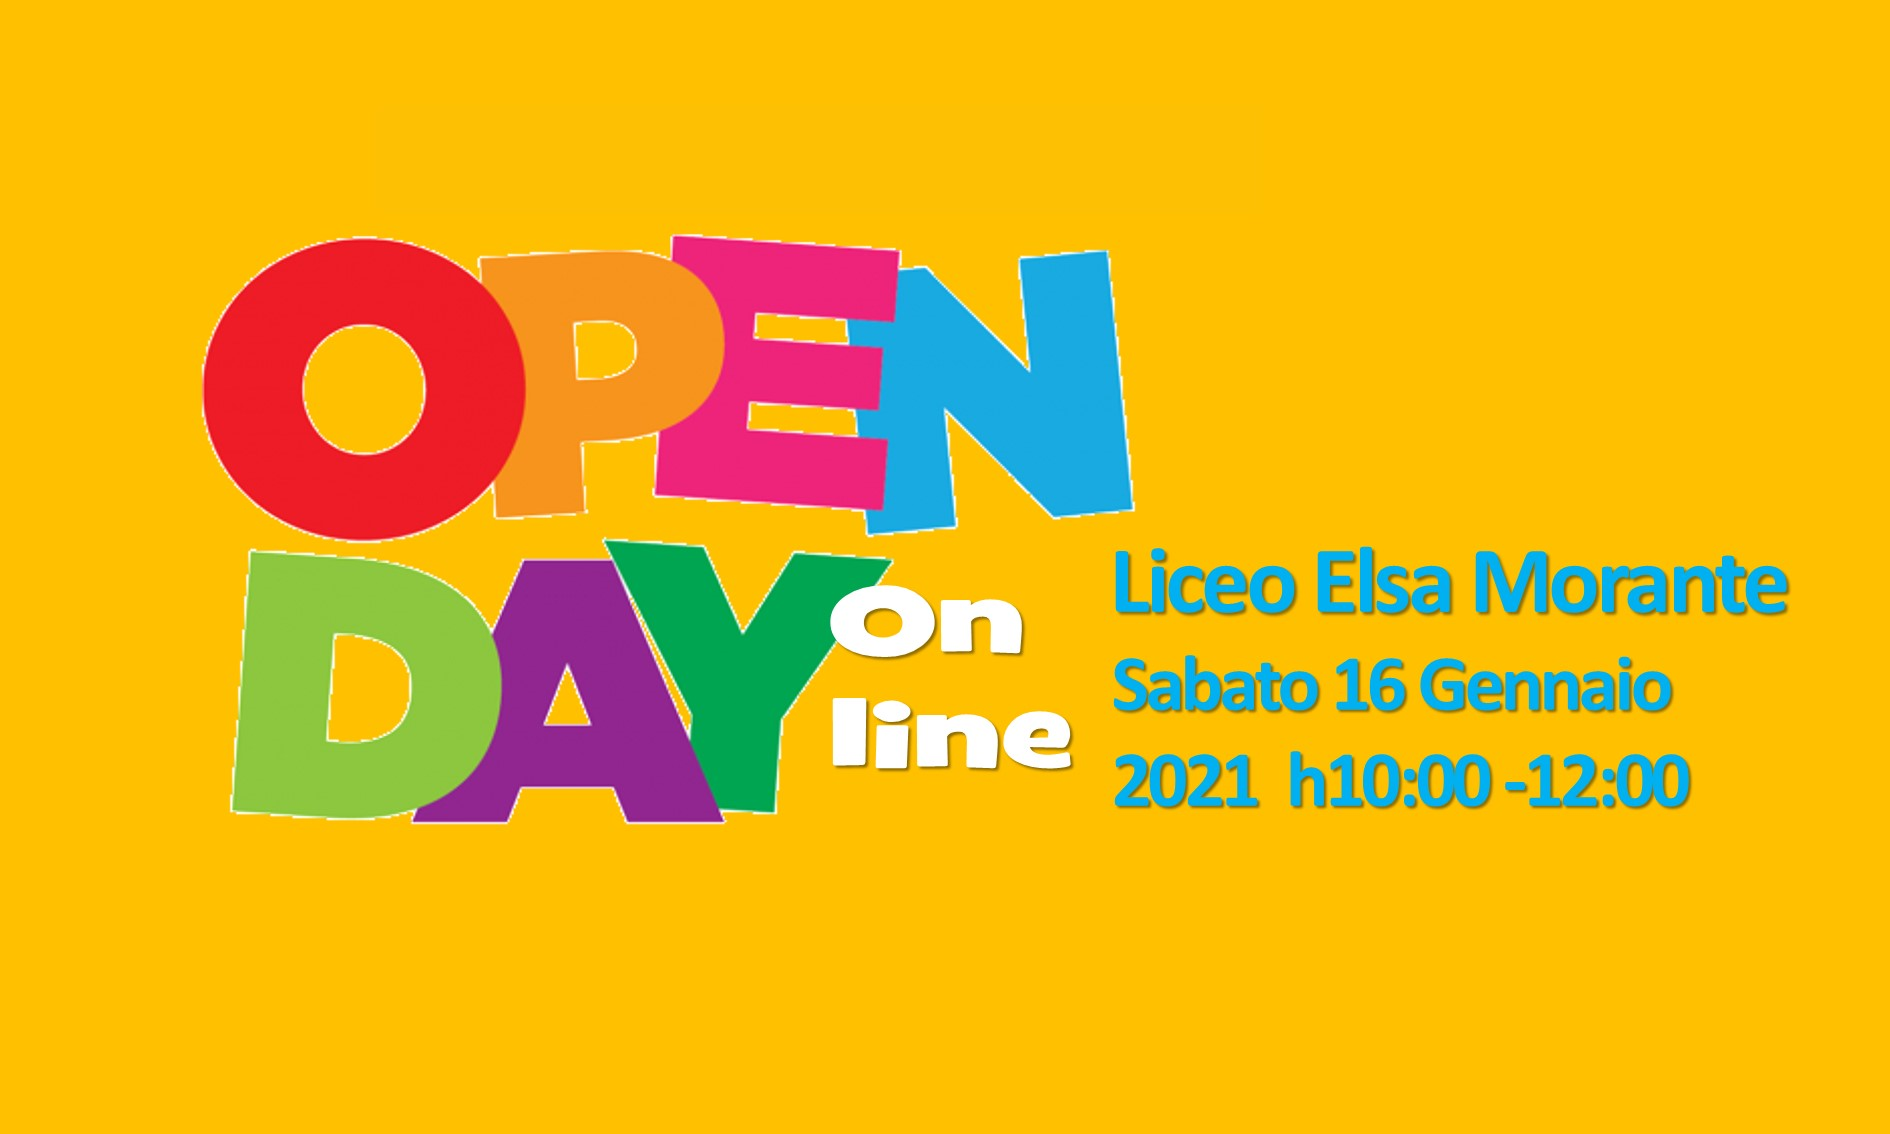 OPEN DAY on line SABATO 16 GENNAIO h 10:00 -12:00